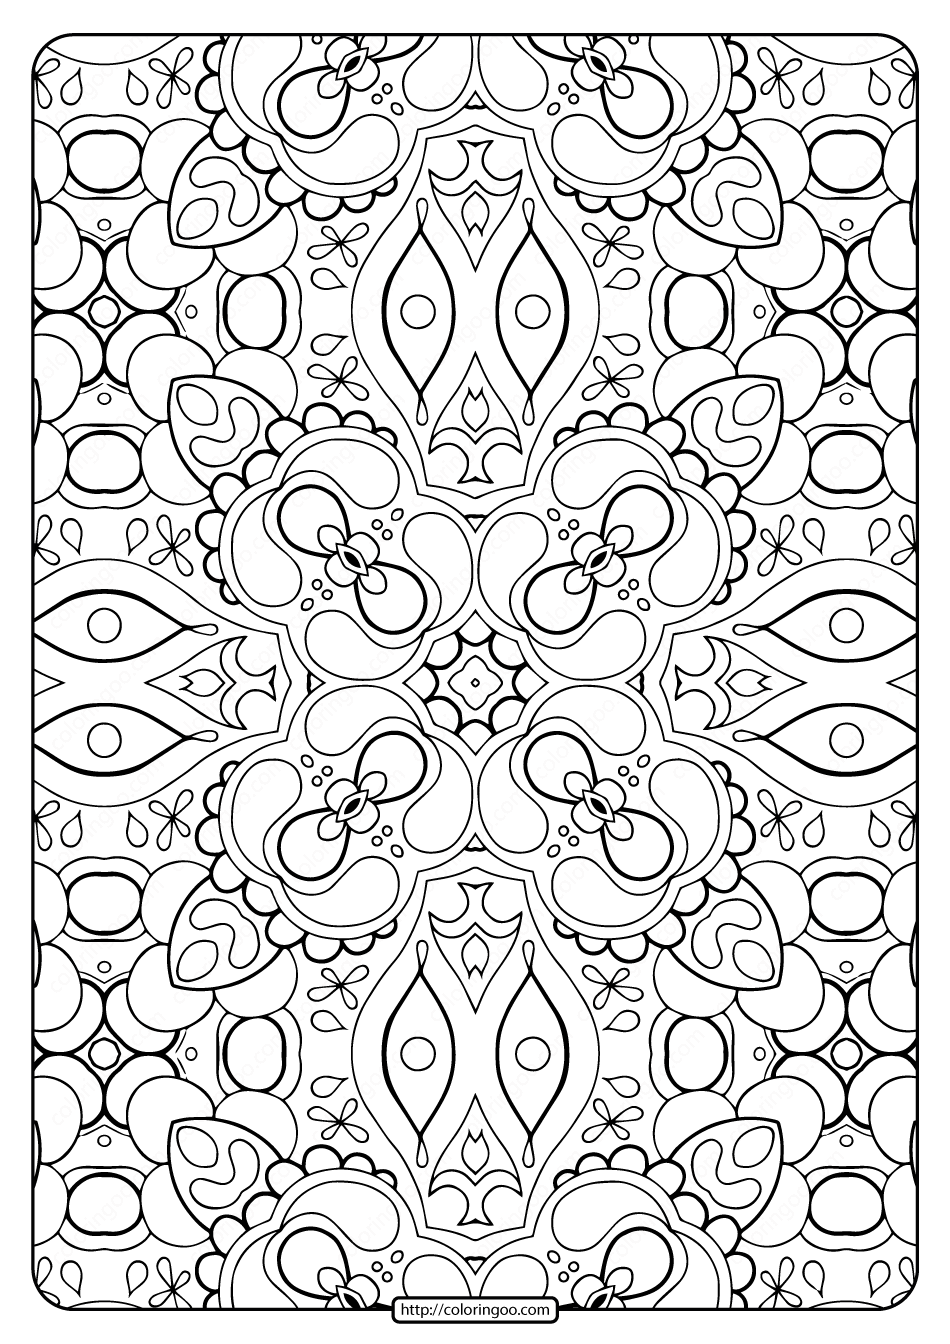 color in pictures giraffes coloring pages to download and print for free in pictures color